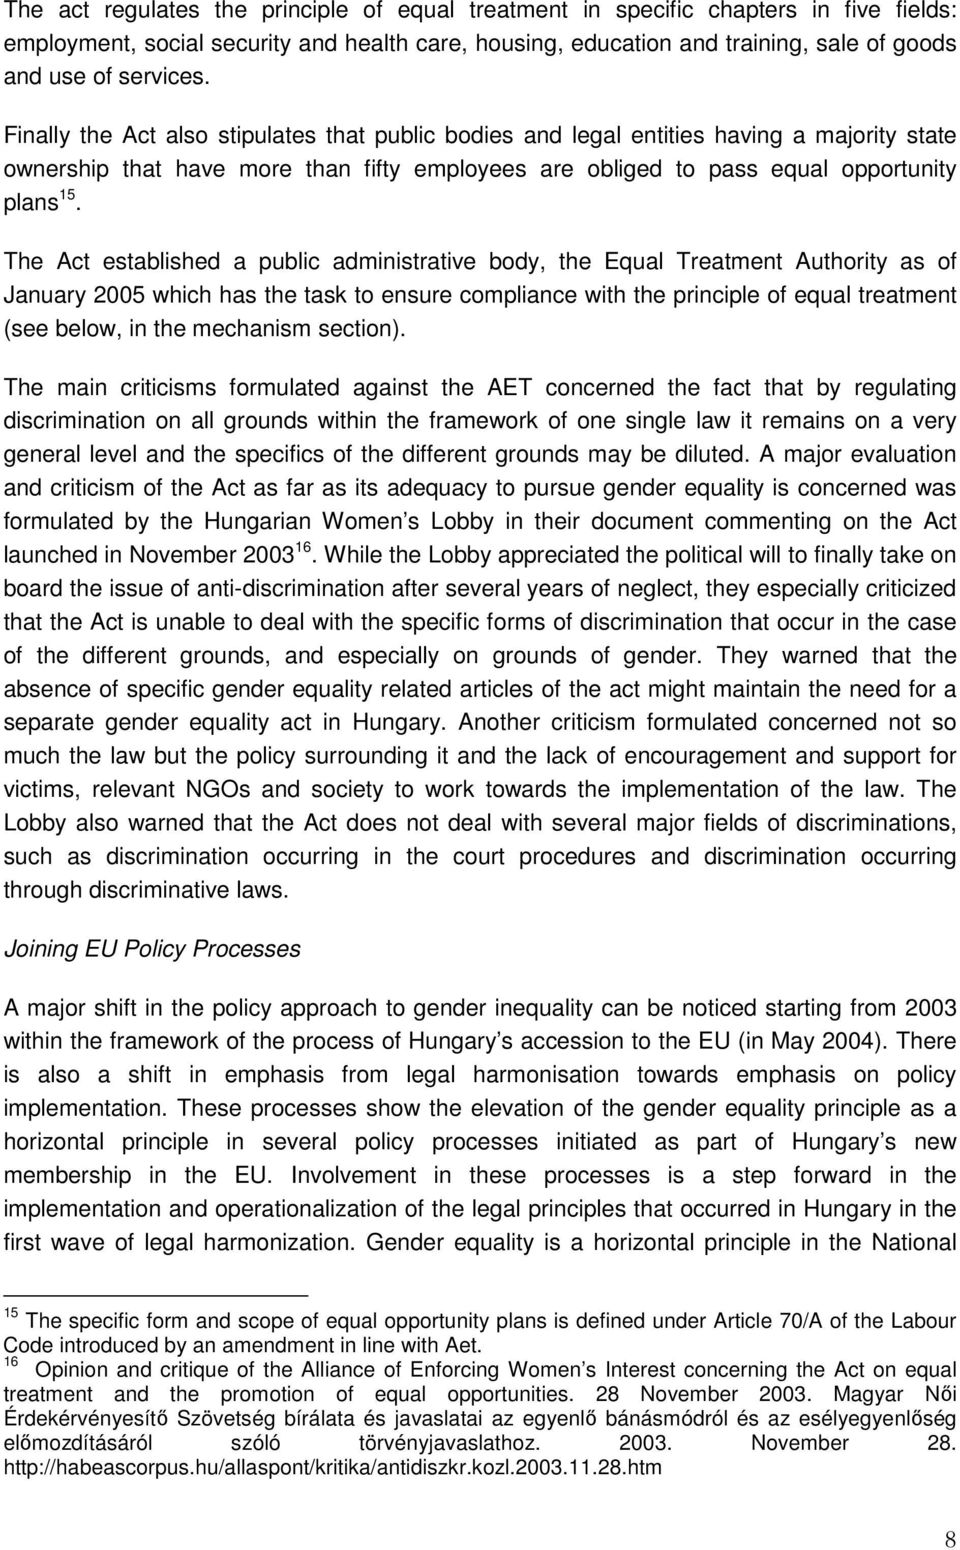 The Act established a public administrative body, the Equal Treatment Authority as of January 2005 which has the task to ensure compliance with the principle of equal treatment (see below, in the